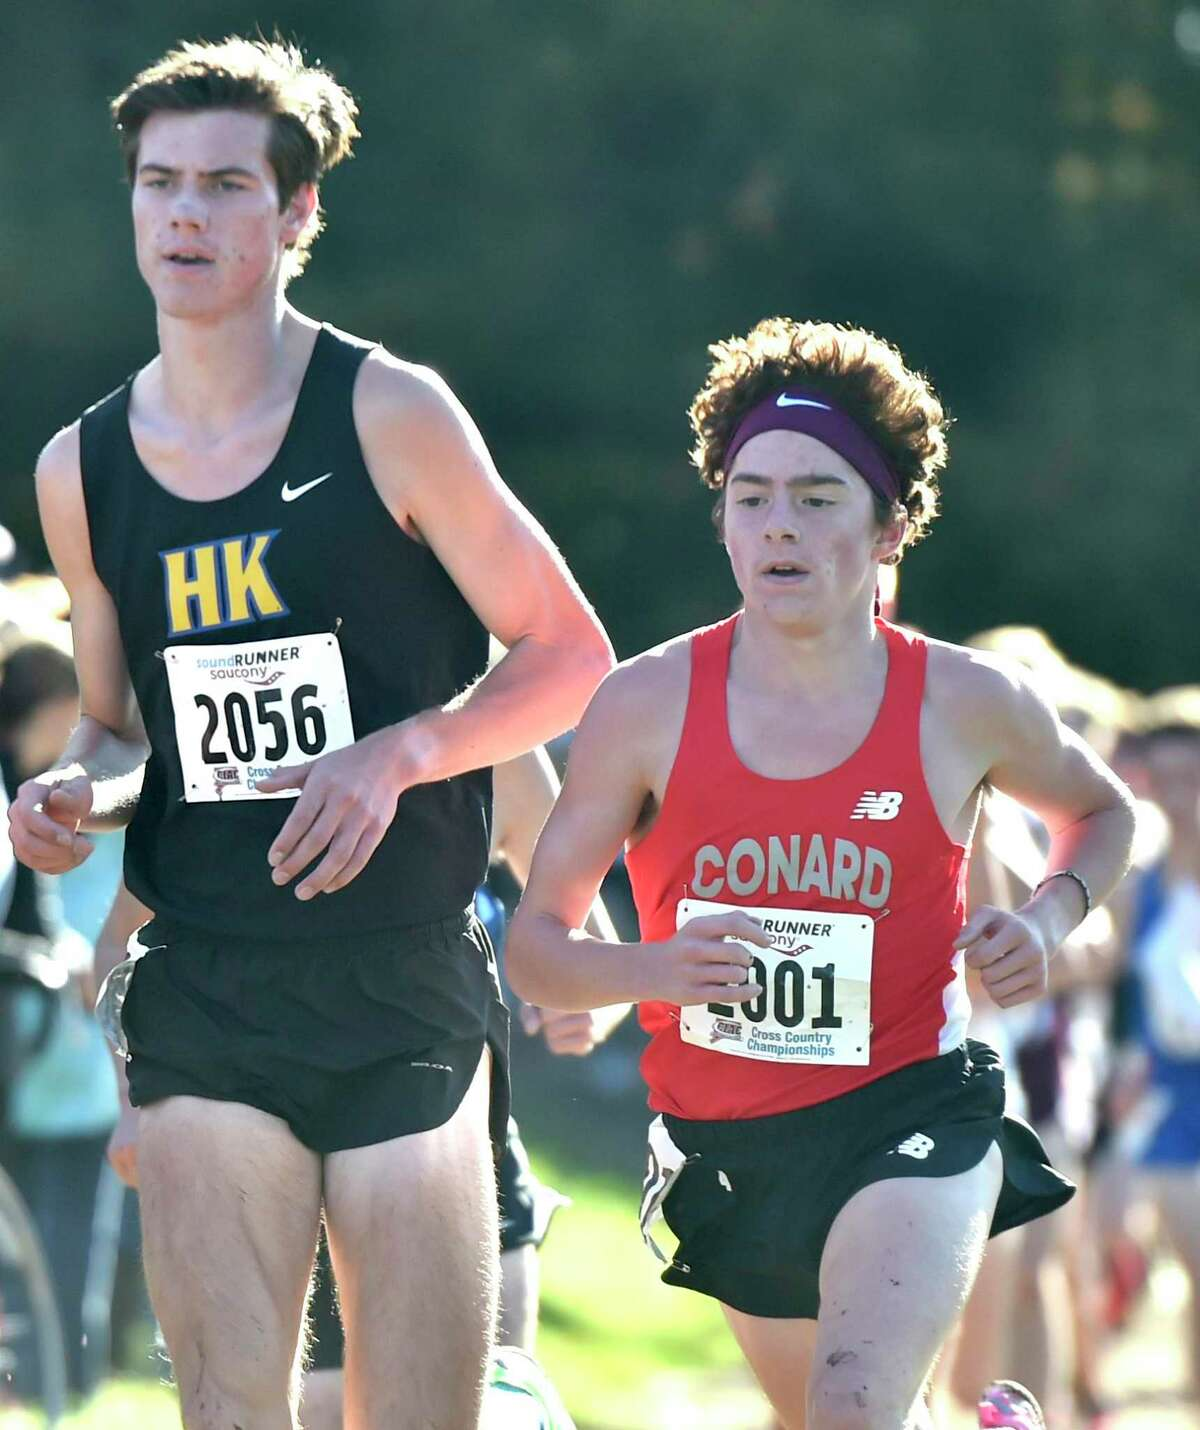 Manchester, Connecticut -Wednesday, November 1, 2019: 22nd place finisher Matt Jennings of Haddam-Killingworth H.S., left, and 9th place finisher Callum Sherry of Conard H.S., right, during the CIAC Boys Cross Country Open Championship Friday at Wickham Park in Manchester.